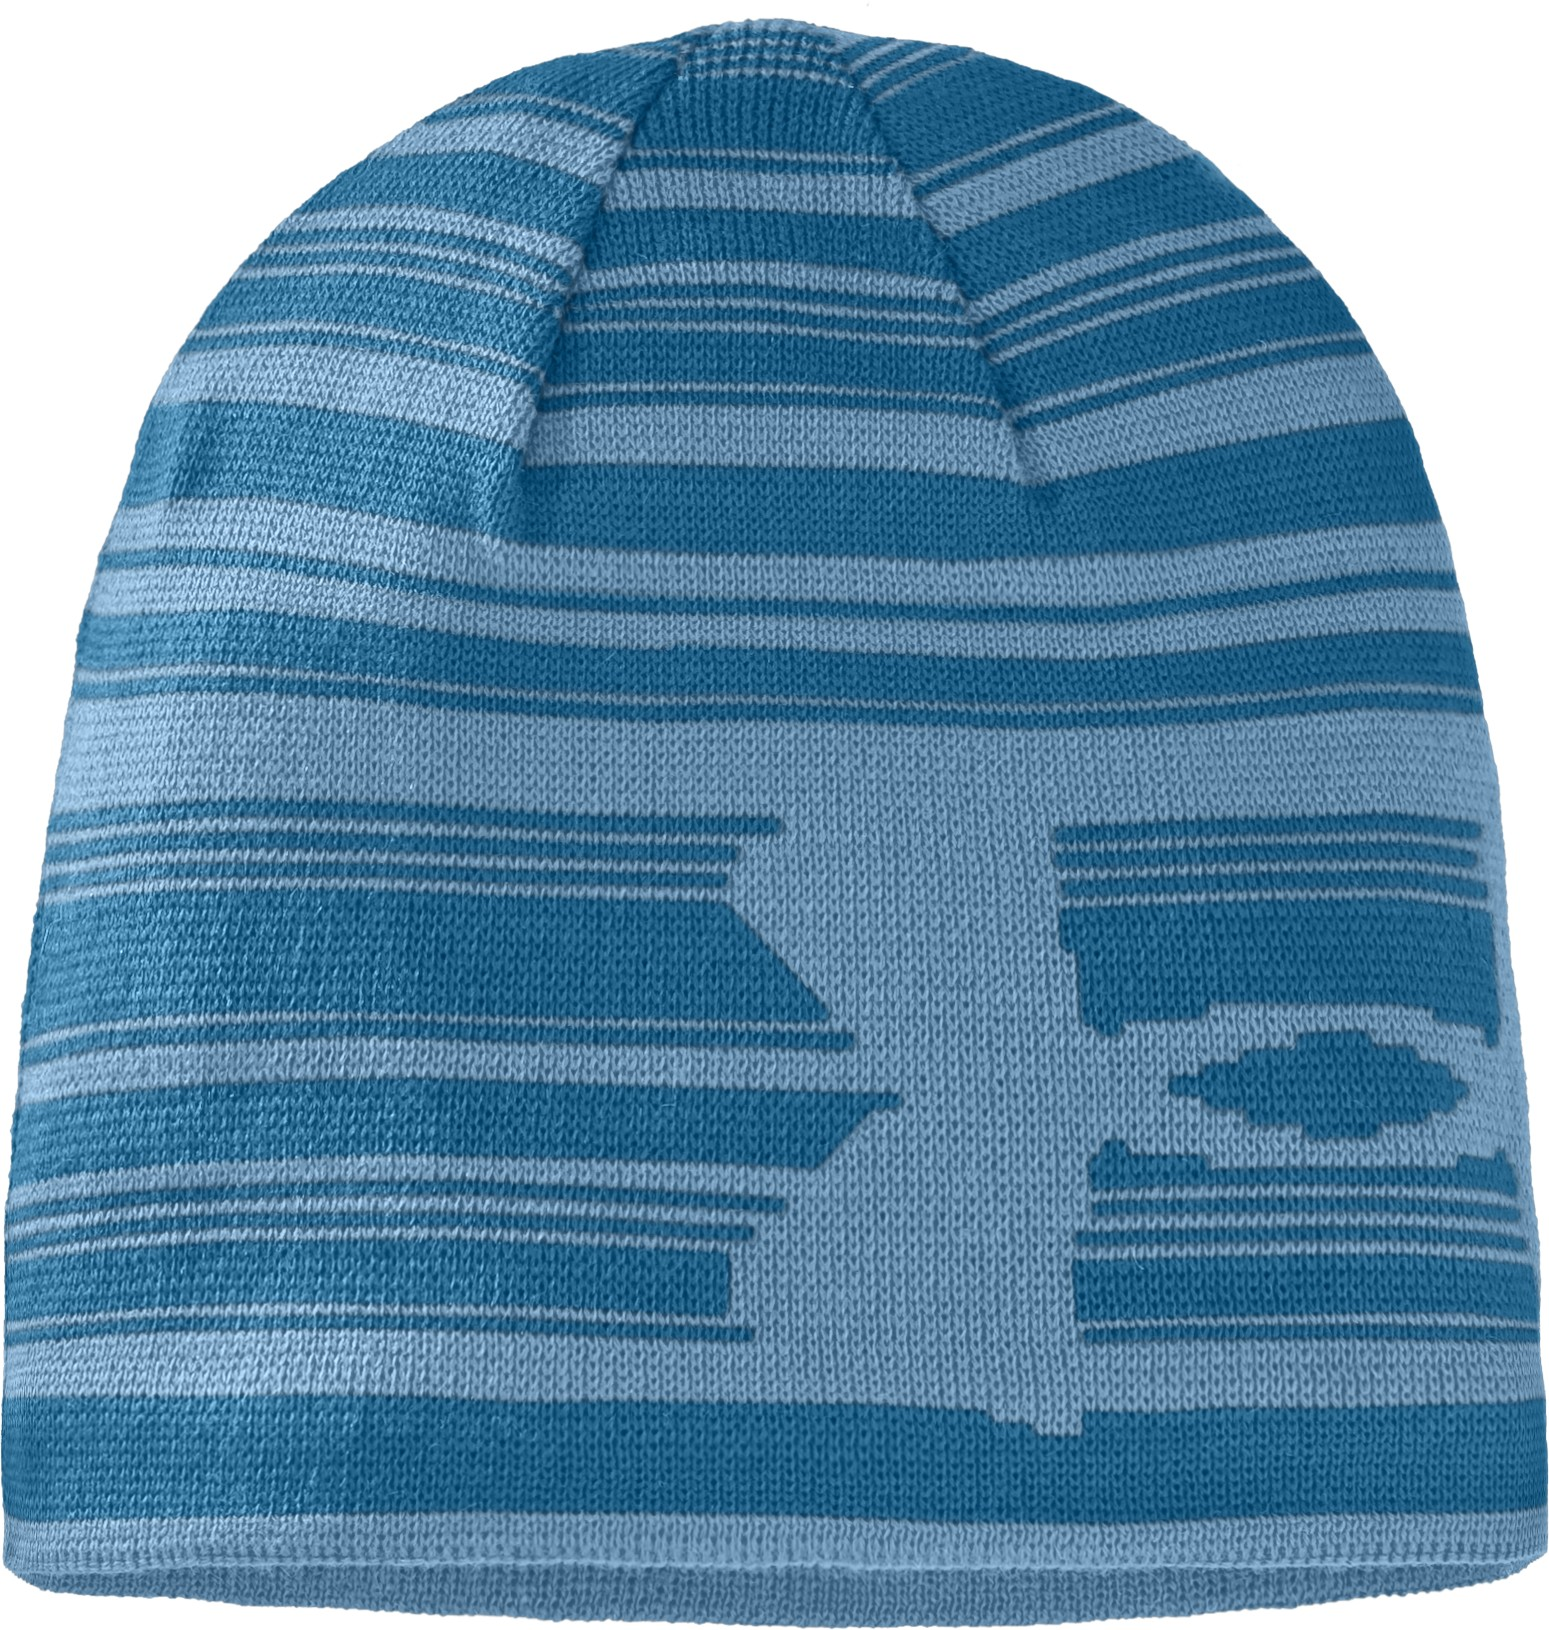 photo: Under Armour Striped Beanie winter hat